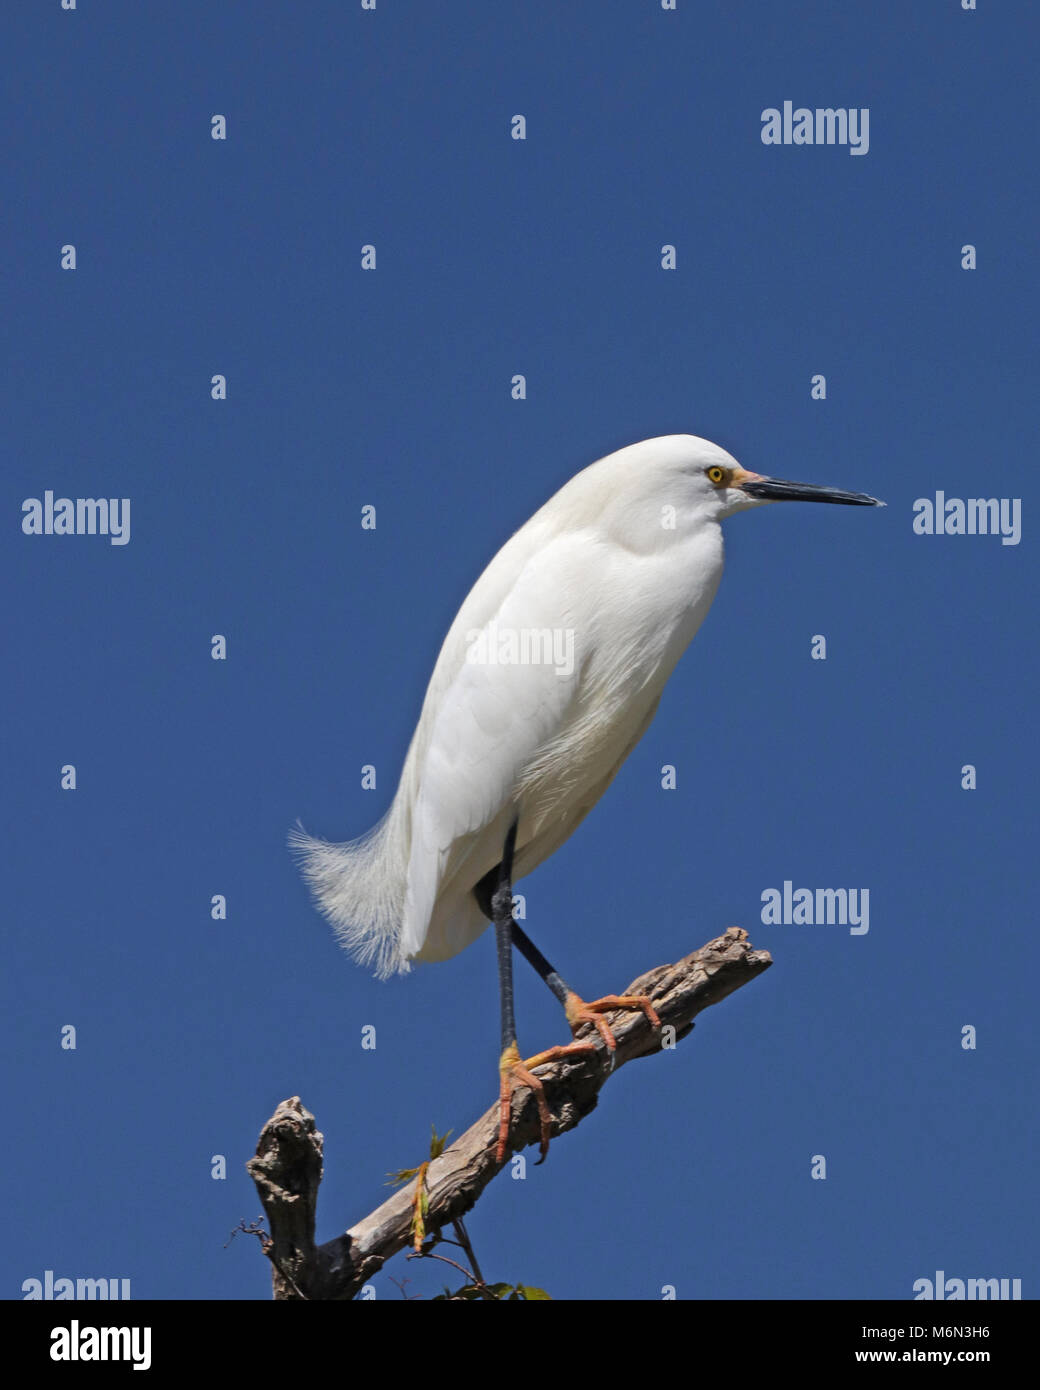 The beautiful Snowy Egret used to be hunted so it's plumes could be used for women's hats - Stock Image